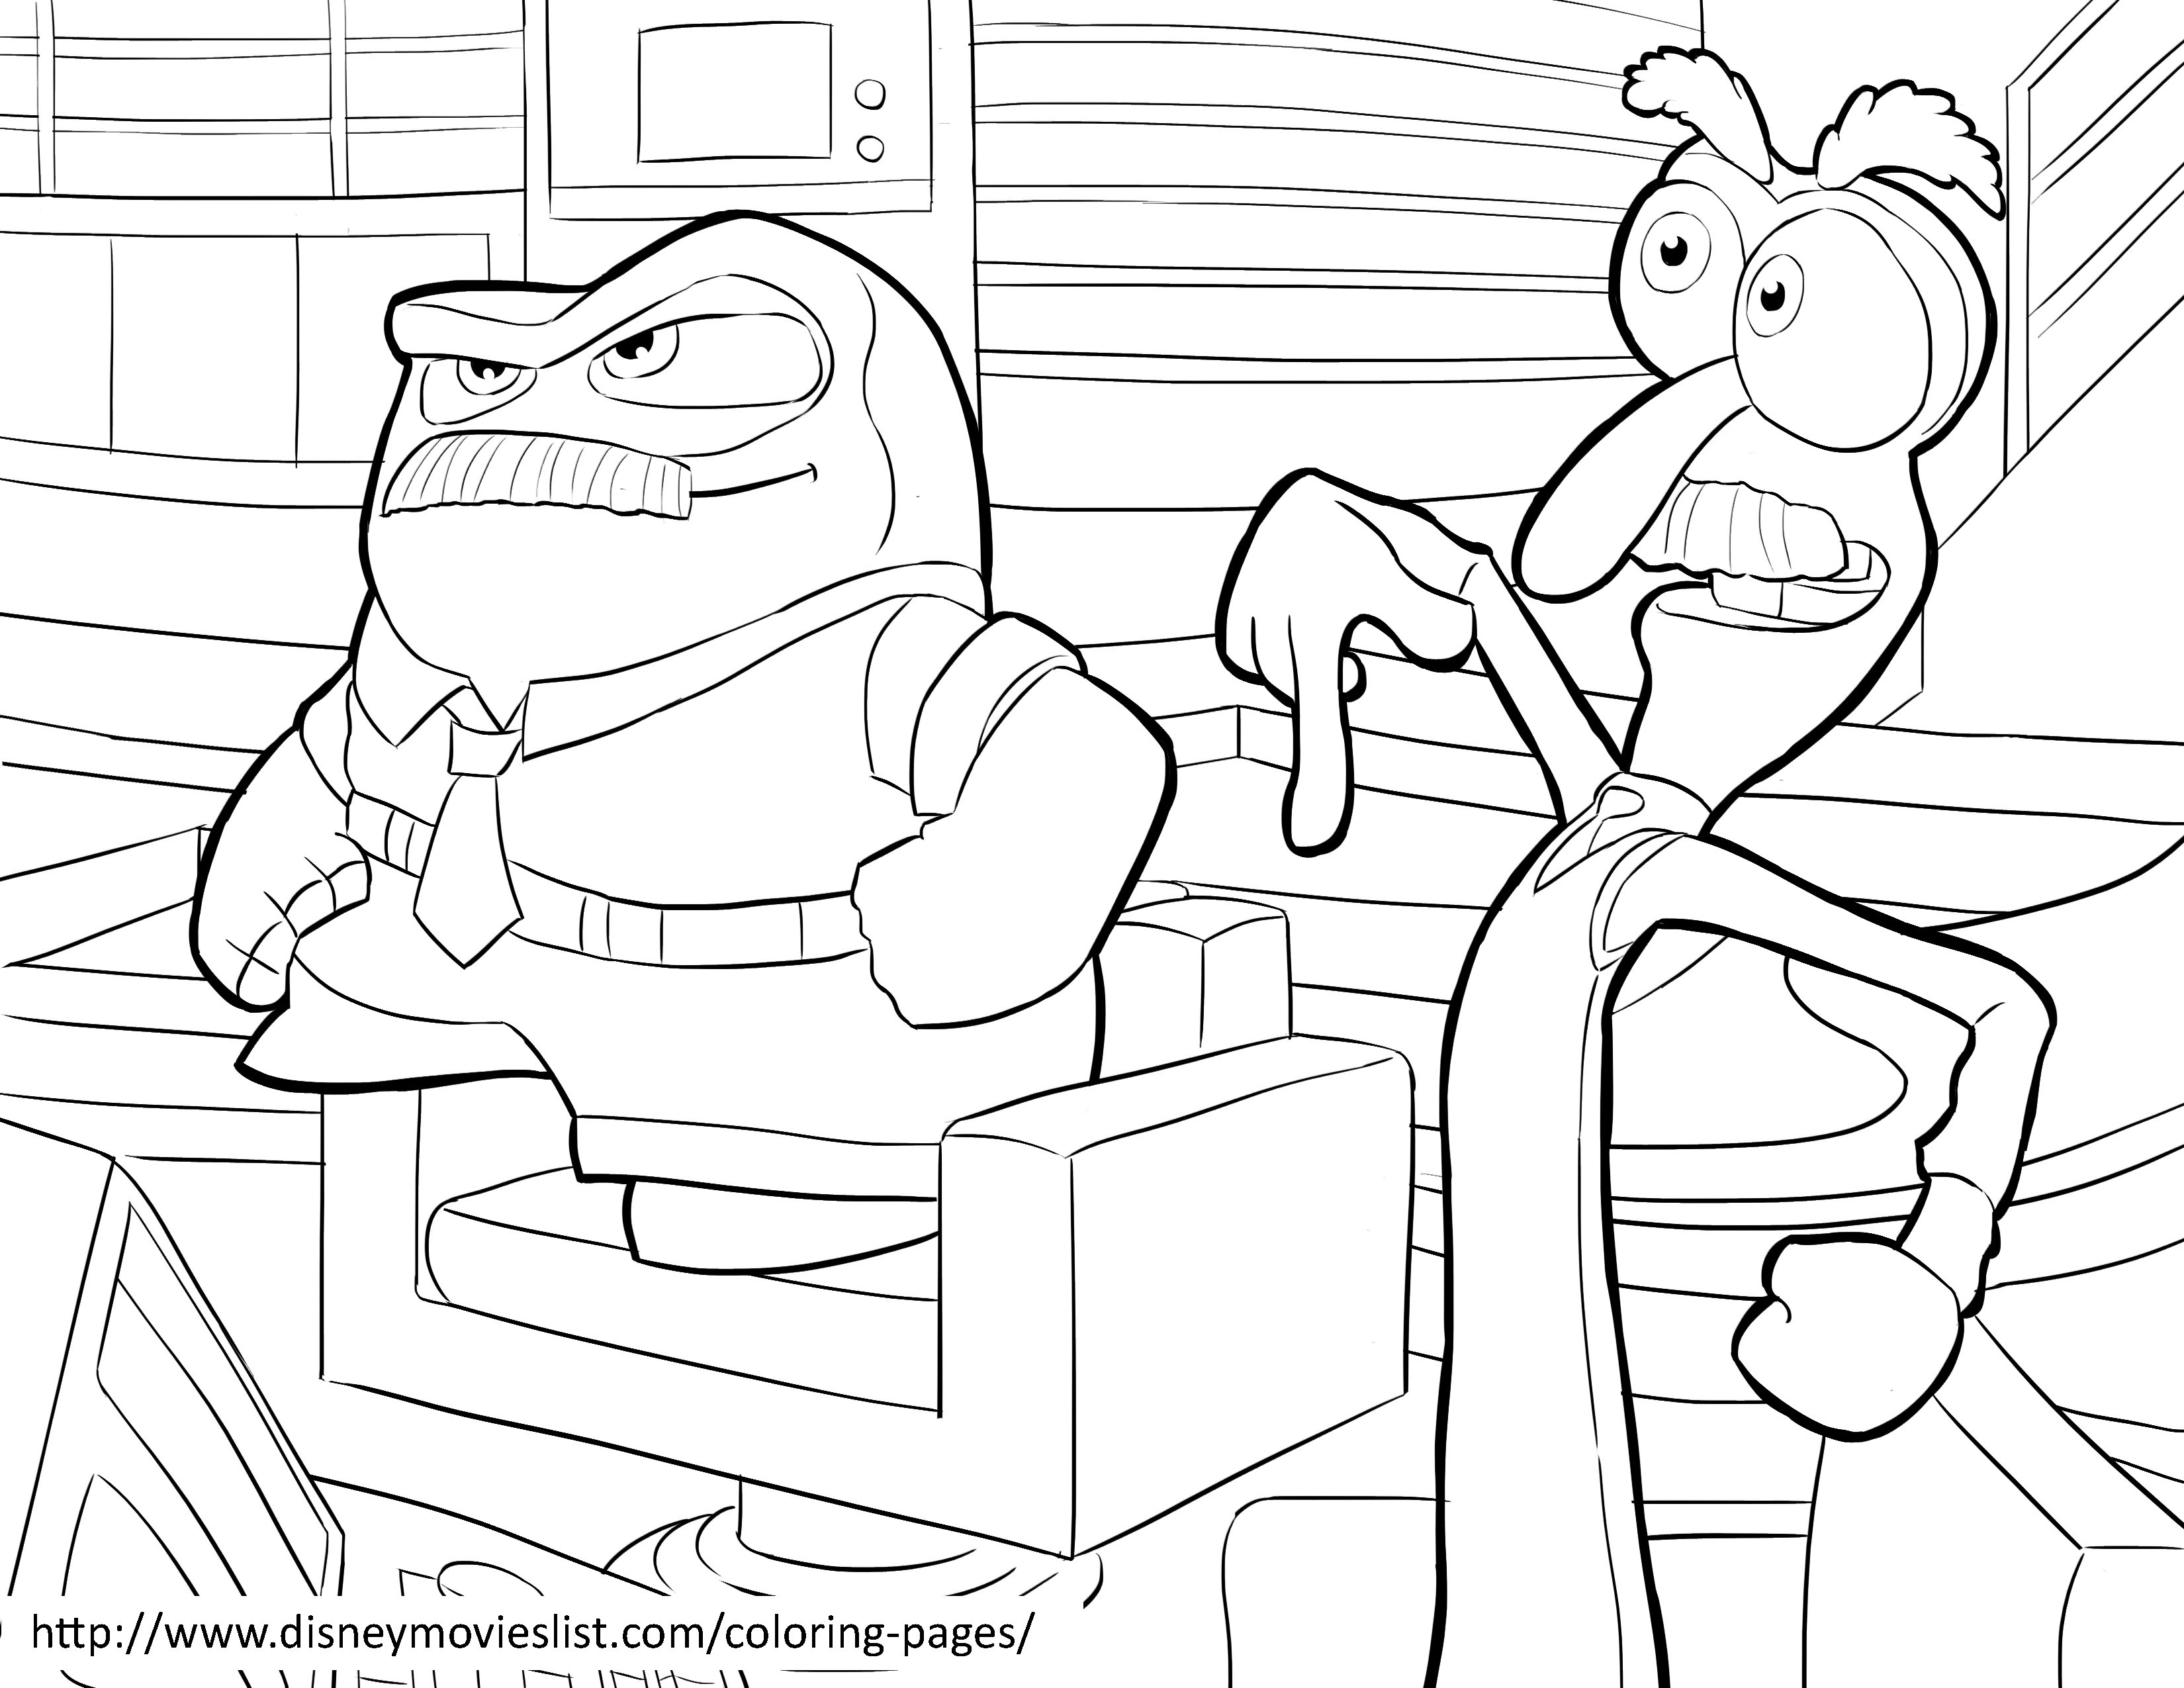 3300x2550 Disgust Coloring Page Riley Inside Out Org Best Pages